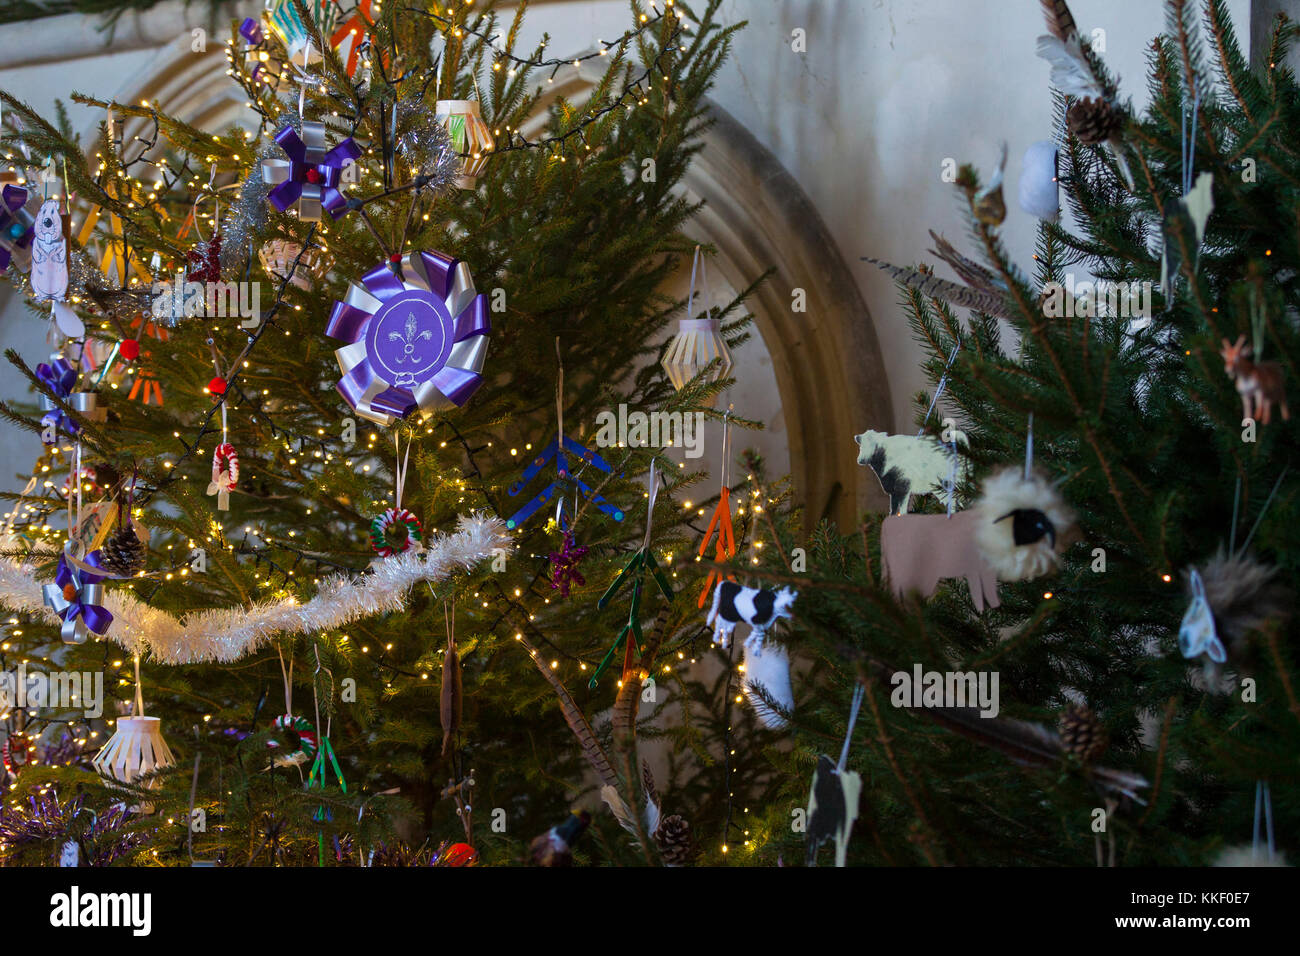 Woodchurch, Kent, UK. 2nd Dec, 2017. A Christmas Tree festival sponsored by the Woodchurch Community Centre in aid - Stock Image